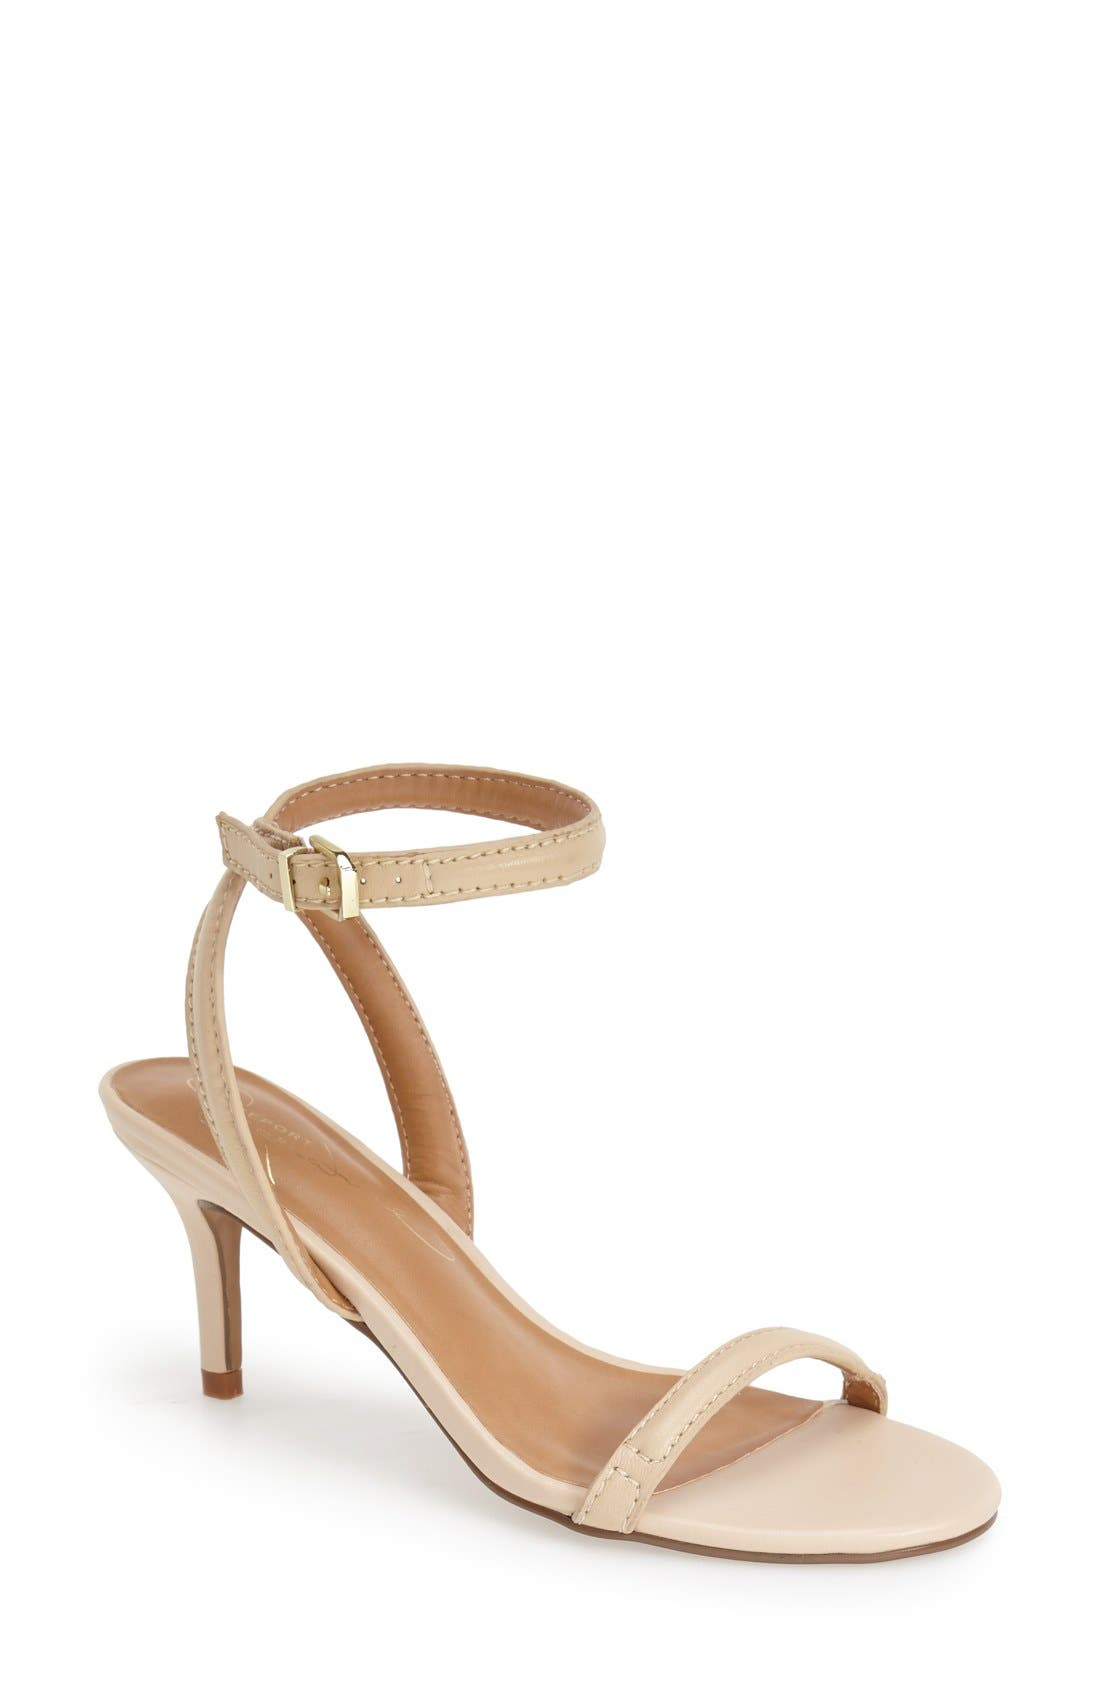 Main Image - REPORT 'Signature Neely' Ankle Strap Sandal (Women)